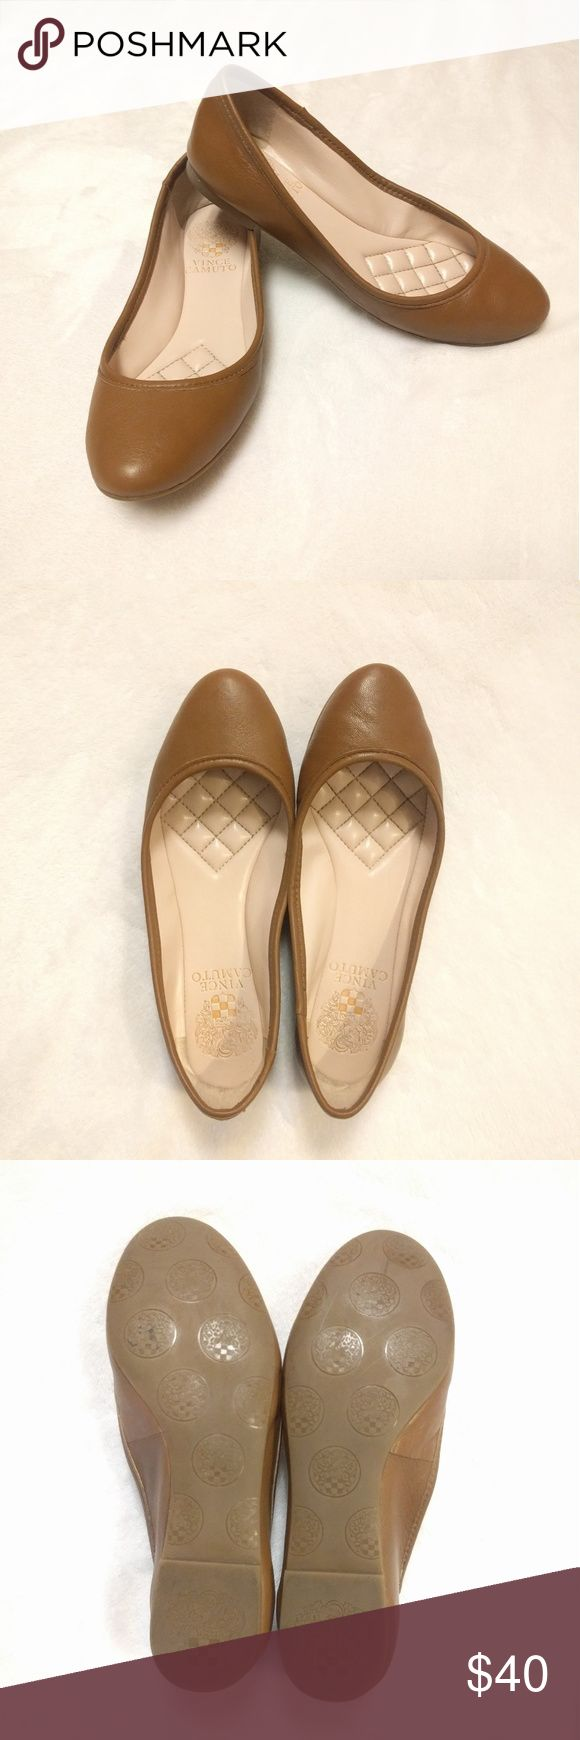 Vince Camuto Vo-Lupe brown ballet flats In GREAT Condition!! Pre-owned. Only worn a few times. Color brown. Leather upper. Round toe. Size: 5 Vince Camuto Shoes Flats & Loafers